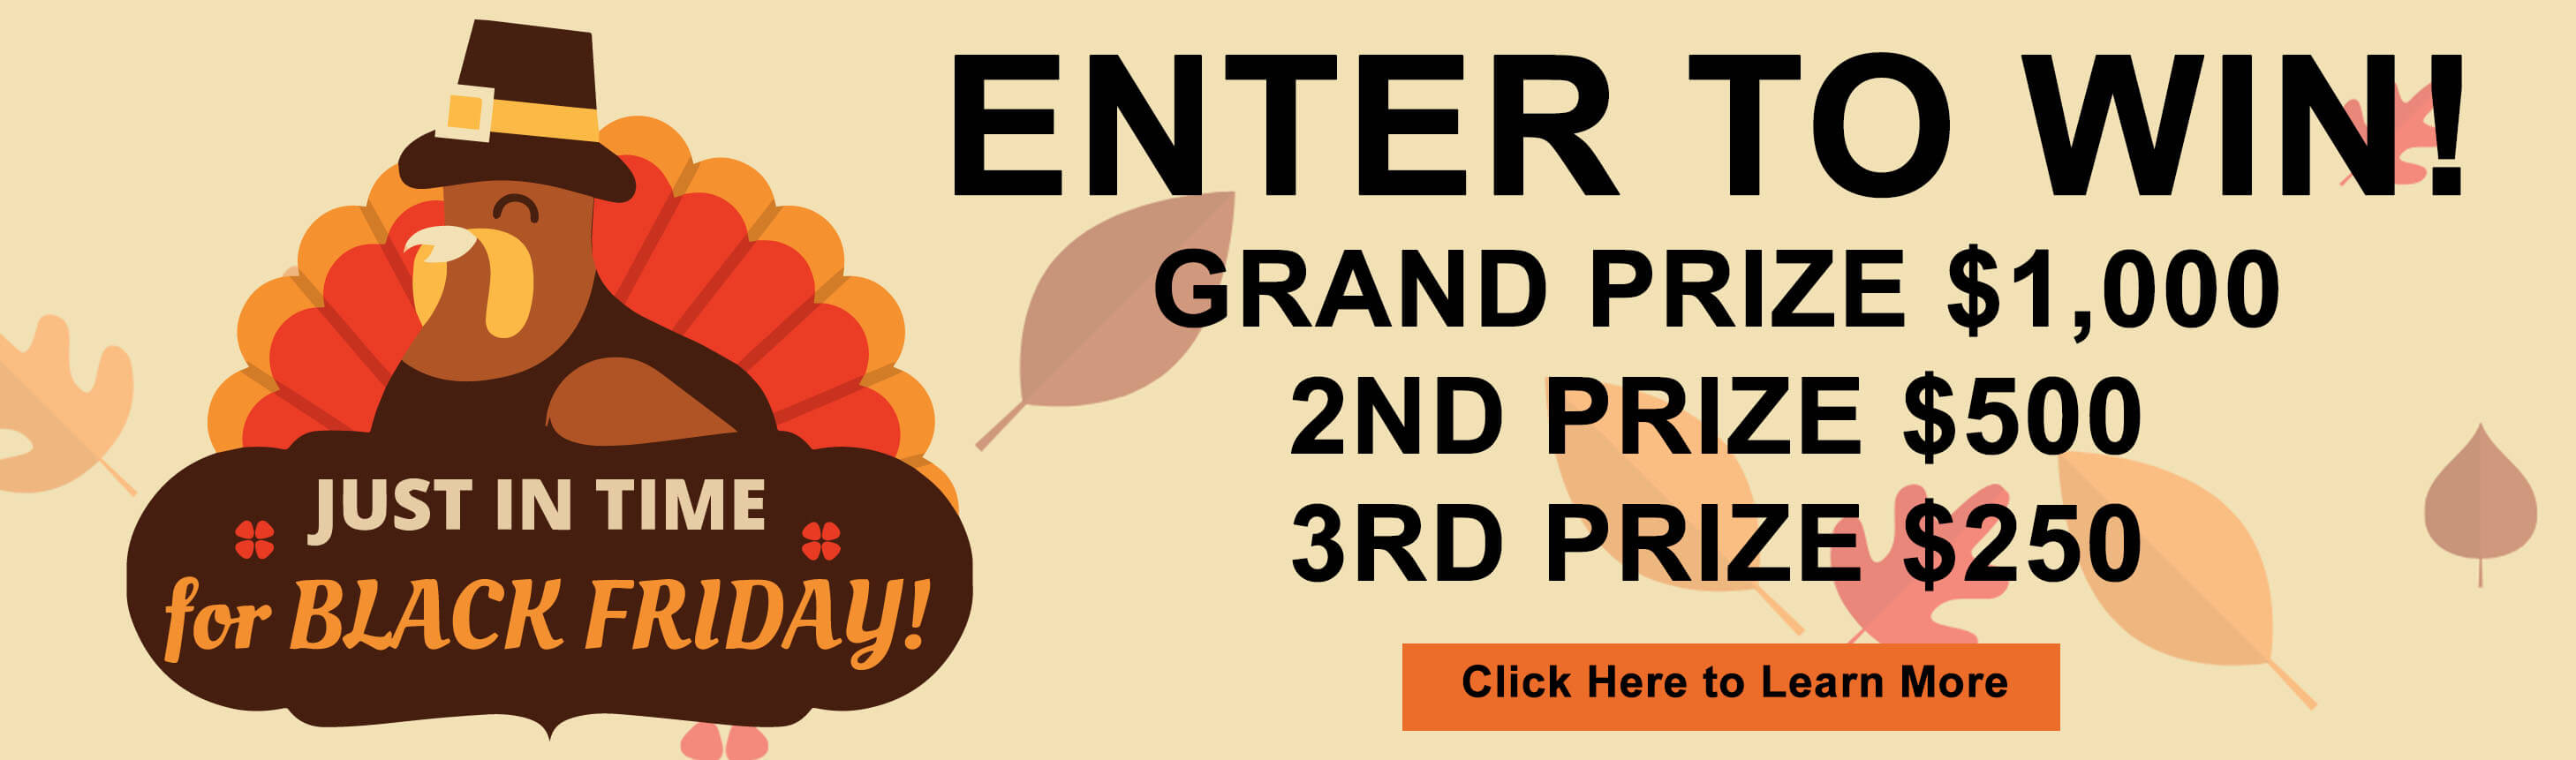 Just in time for Black Friday! Enter to win! Grand Prize $1,000 2nd Prize $500 3rd Prize $250